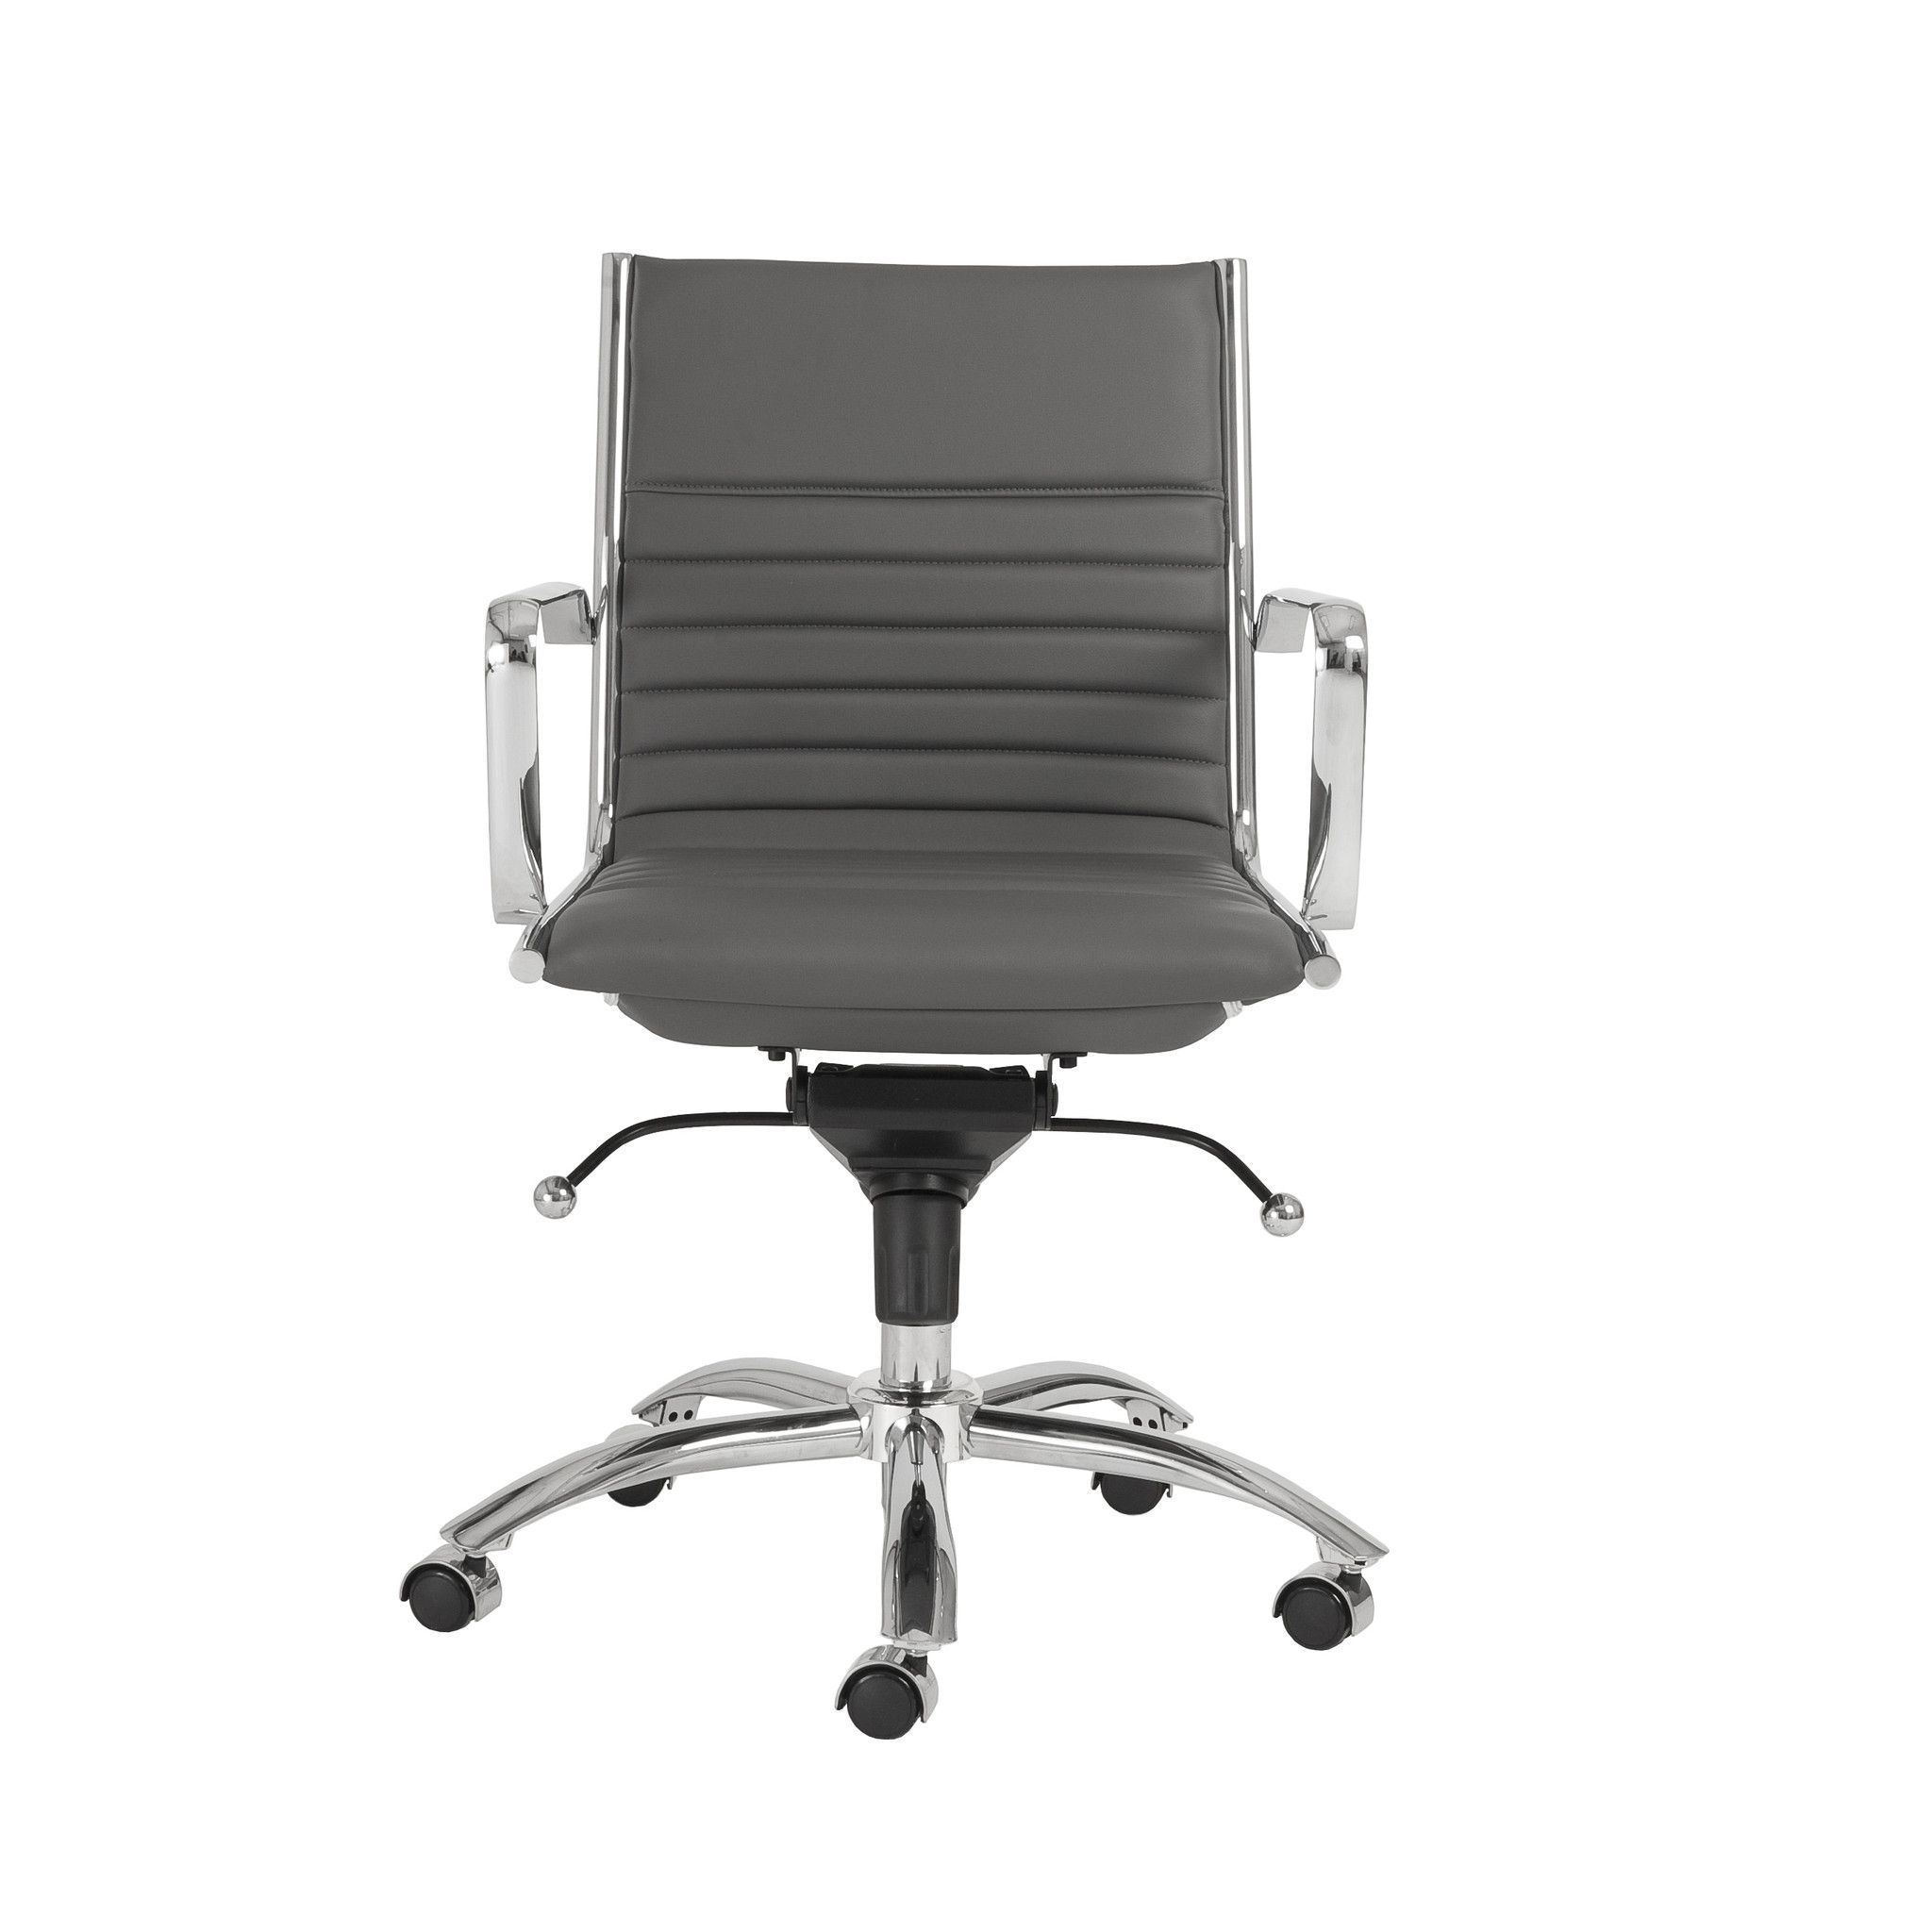 Dirk Low Back Office Chair in Gray with Chromed Steel Base